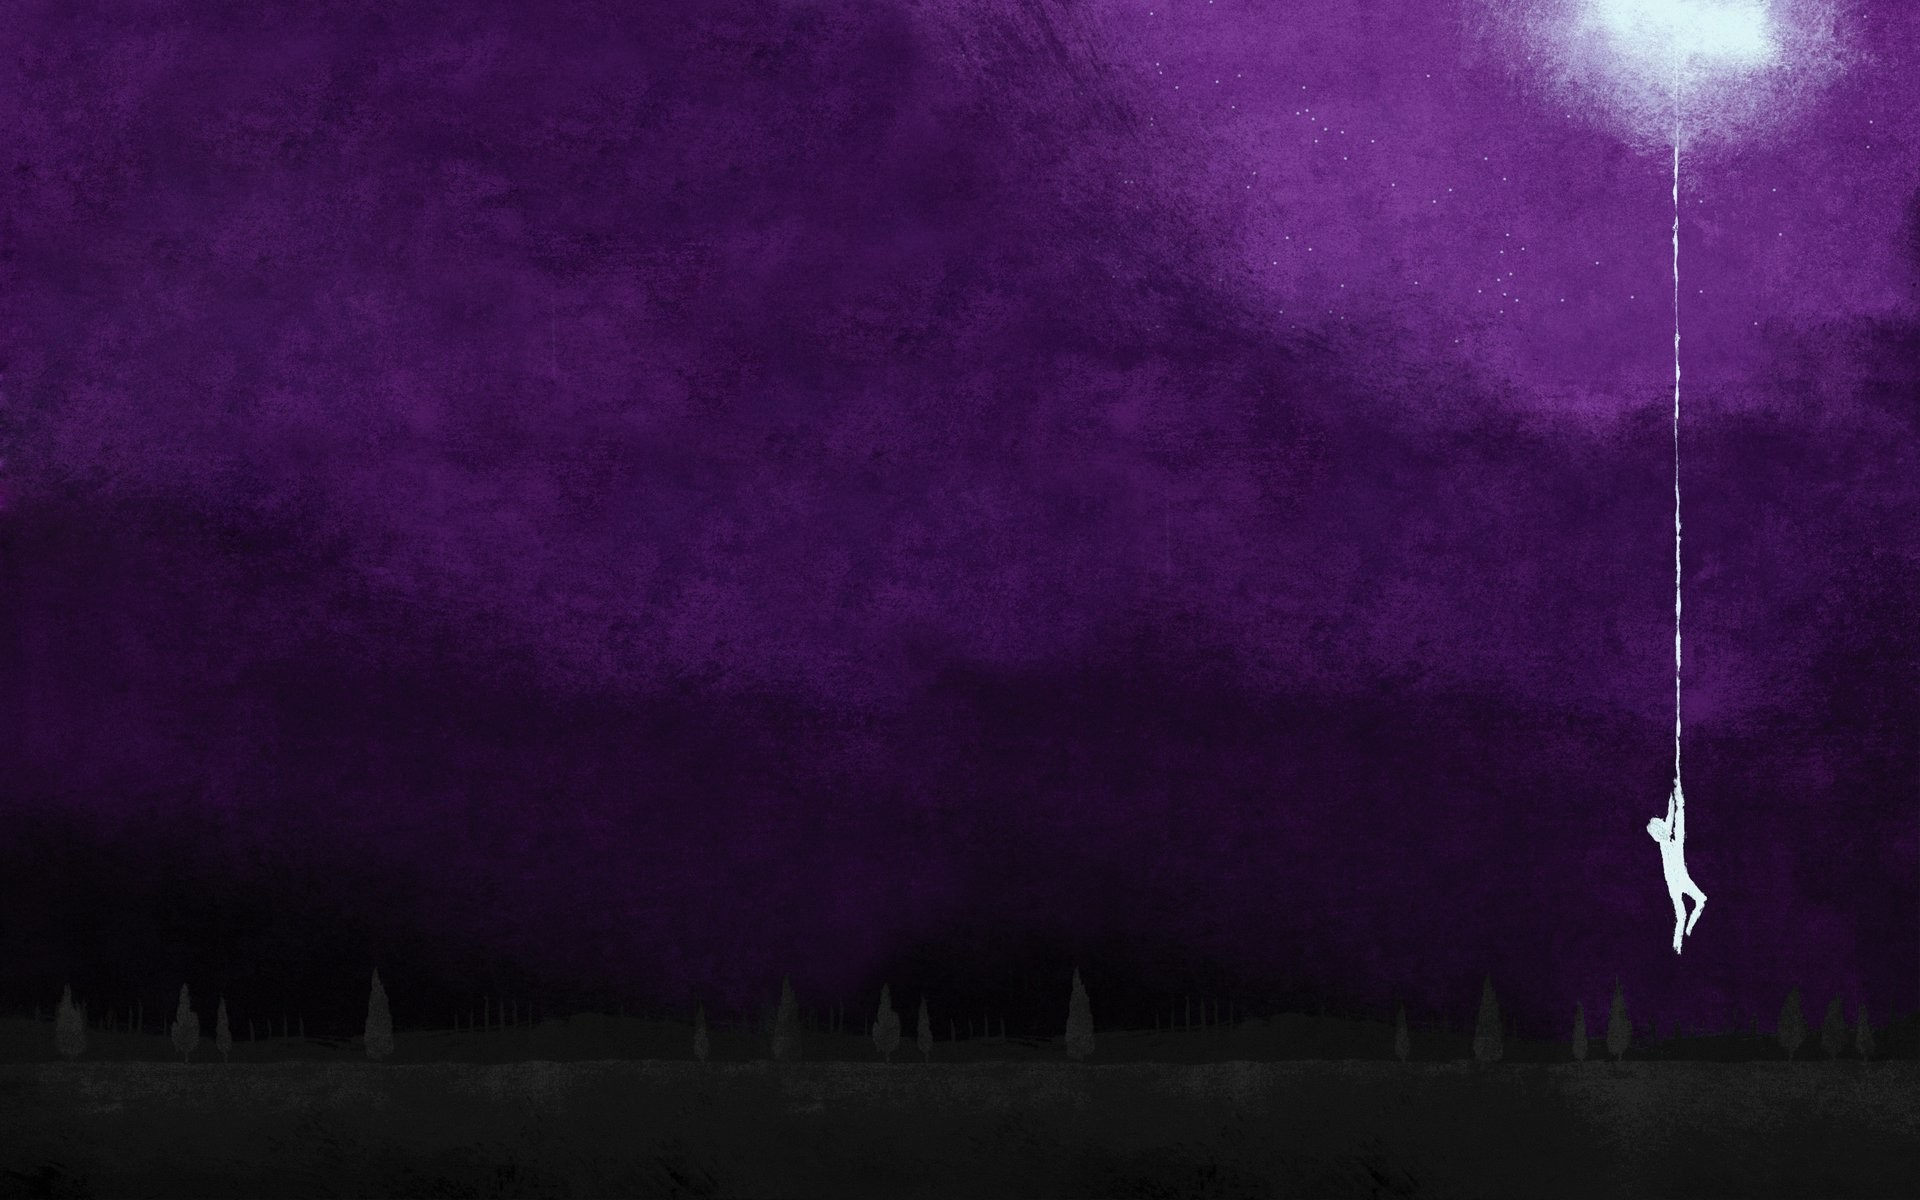 Moon silhouettes hanging artwork album covers purple background August  Burns Red wallpaper     257852   WallpaperUP